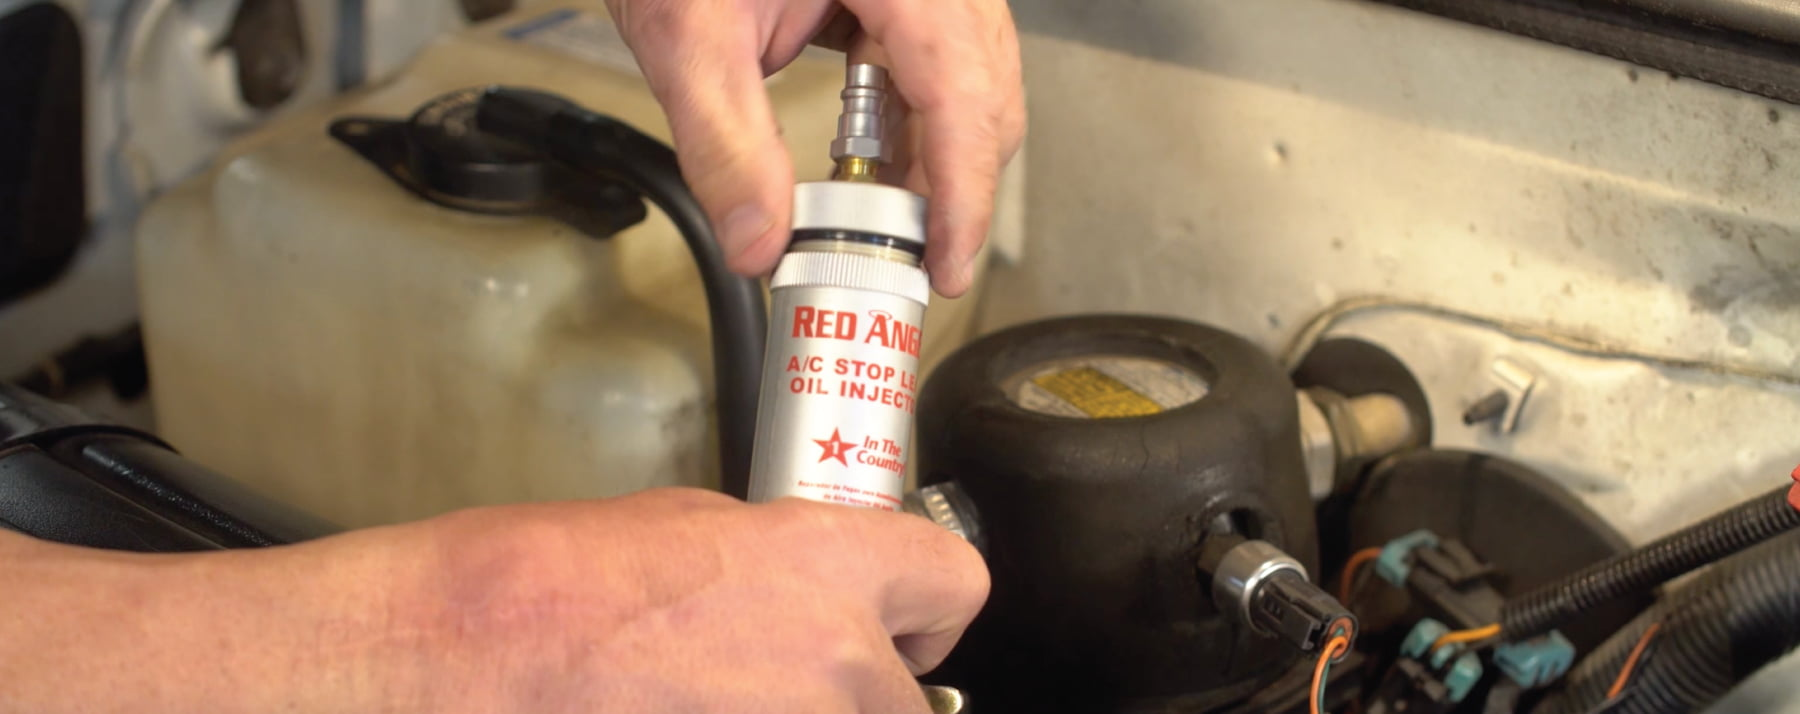 Red Angel Oil Injector